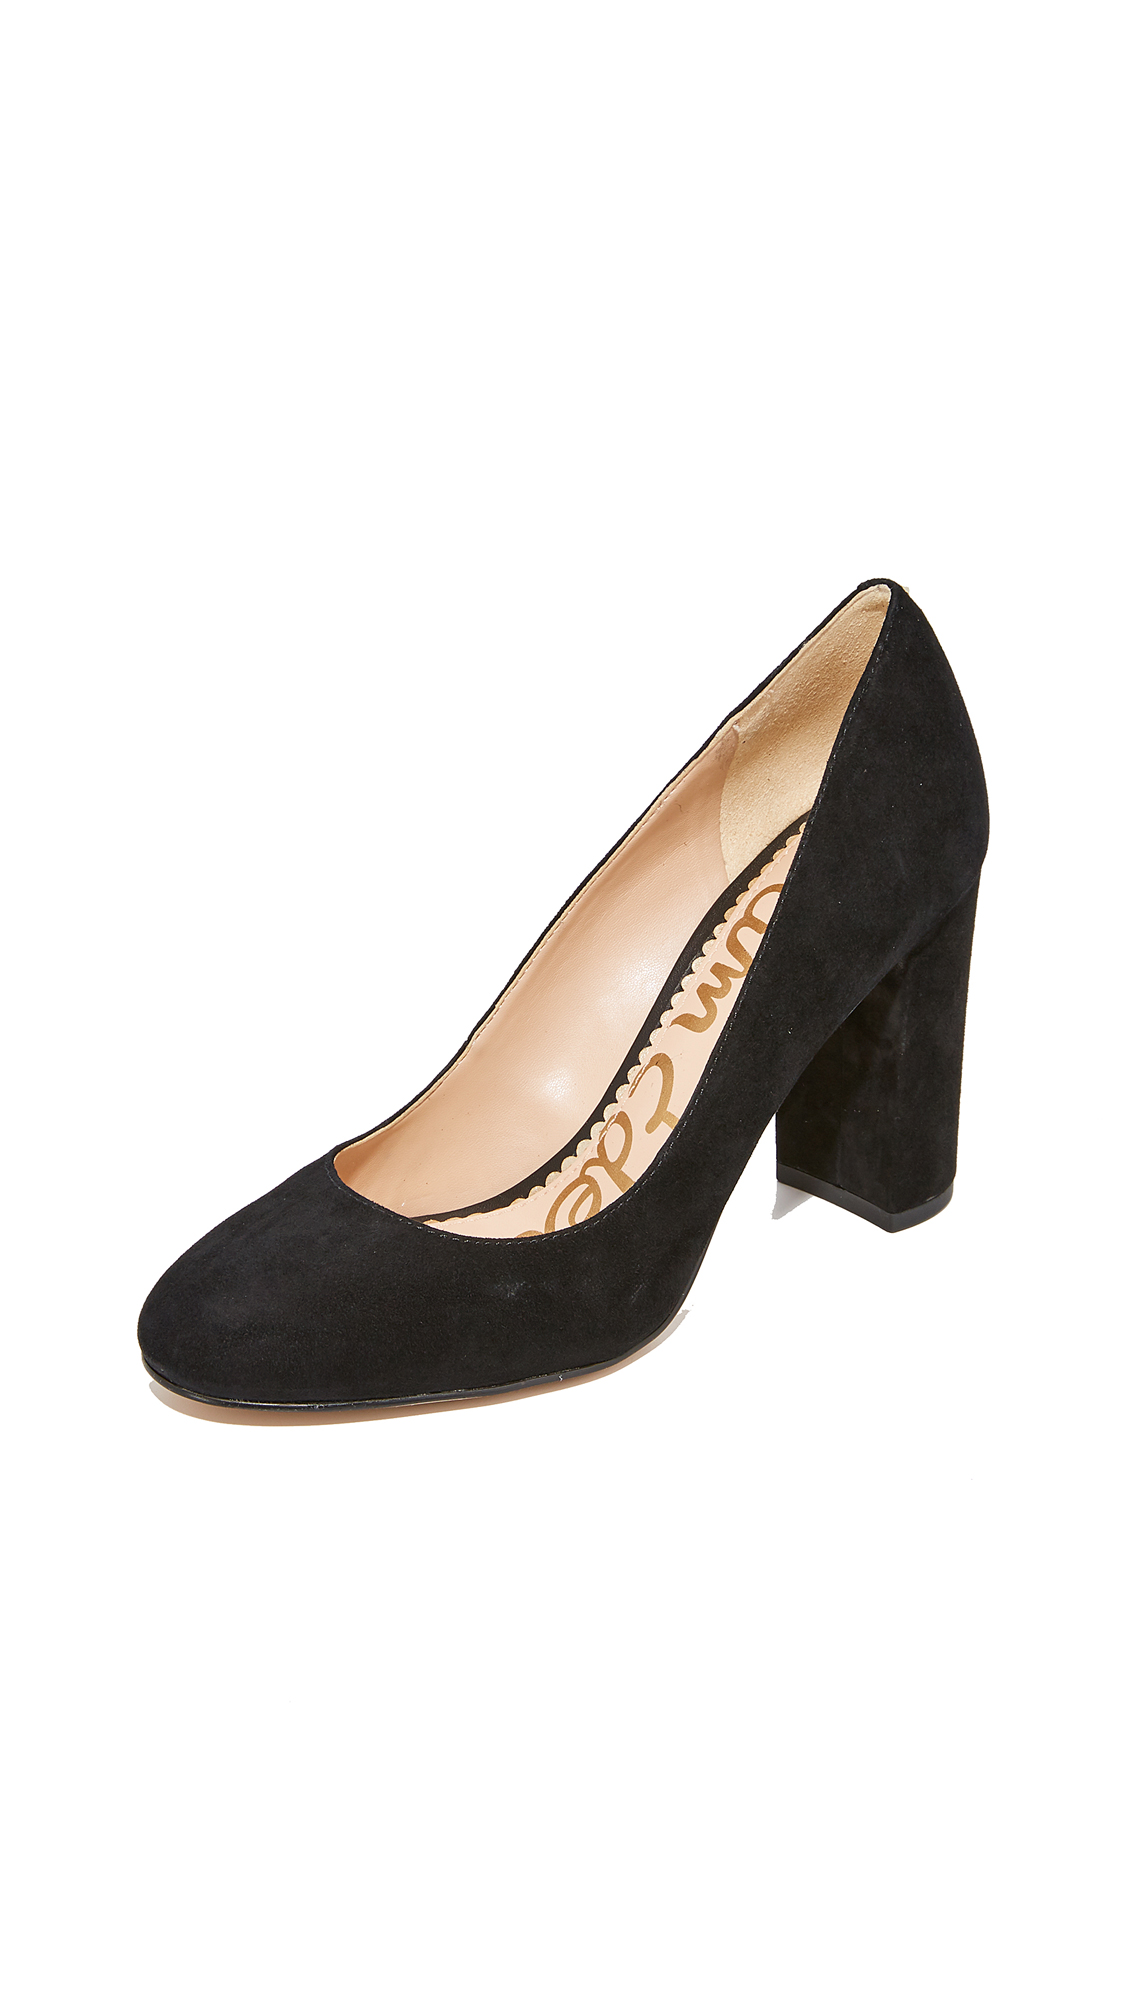 Sam Edelman Stillson Pumps - Black